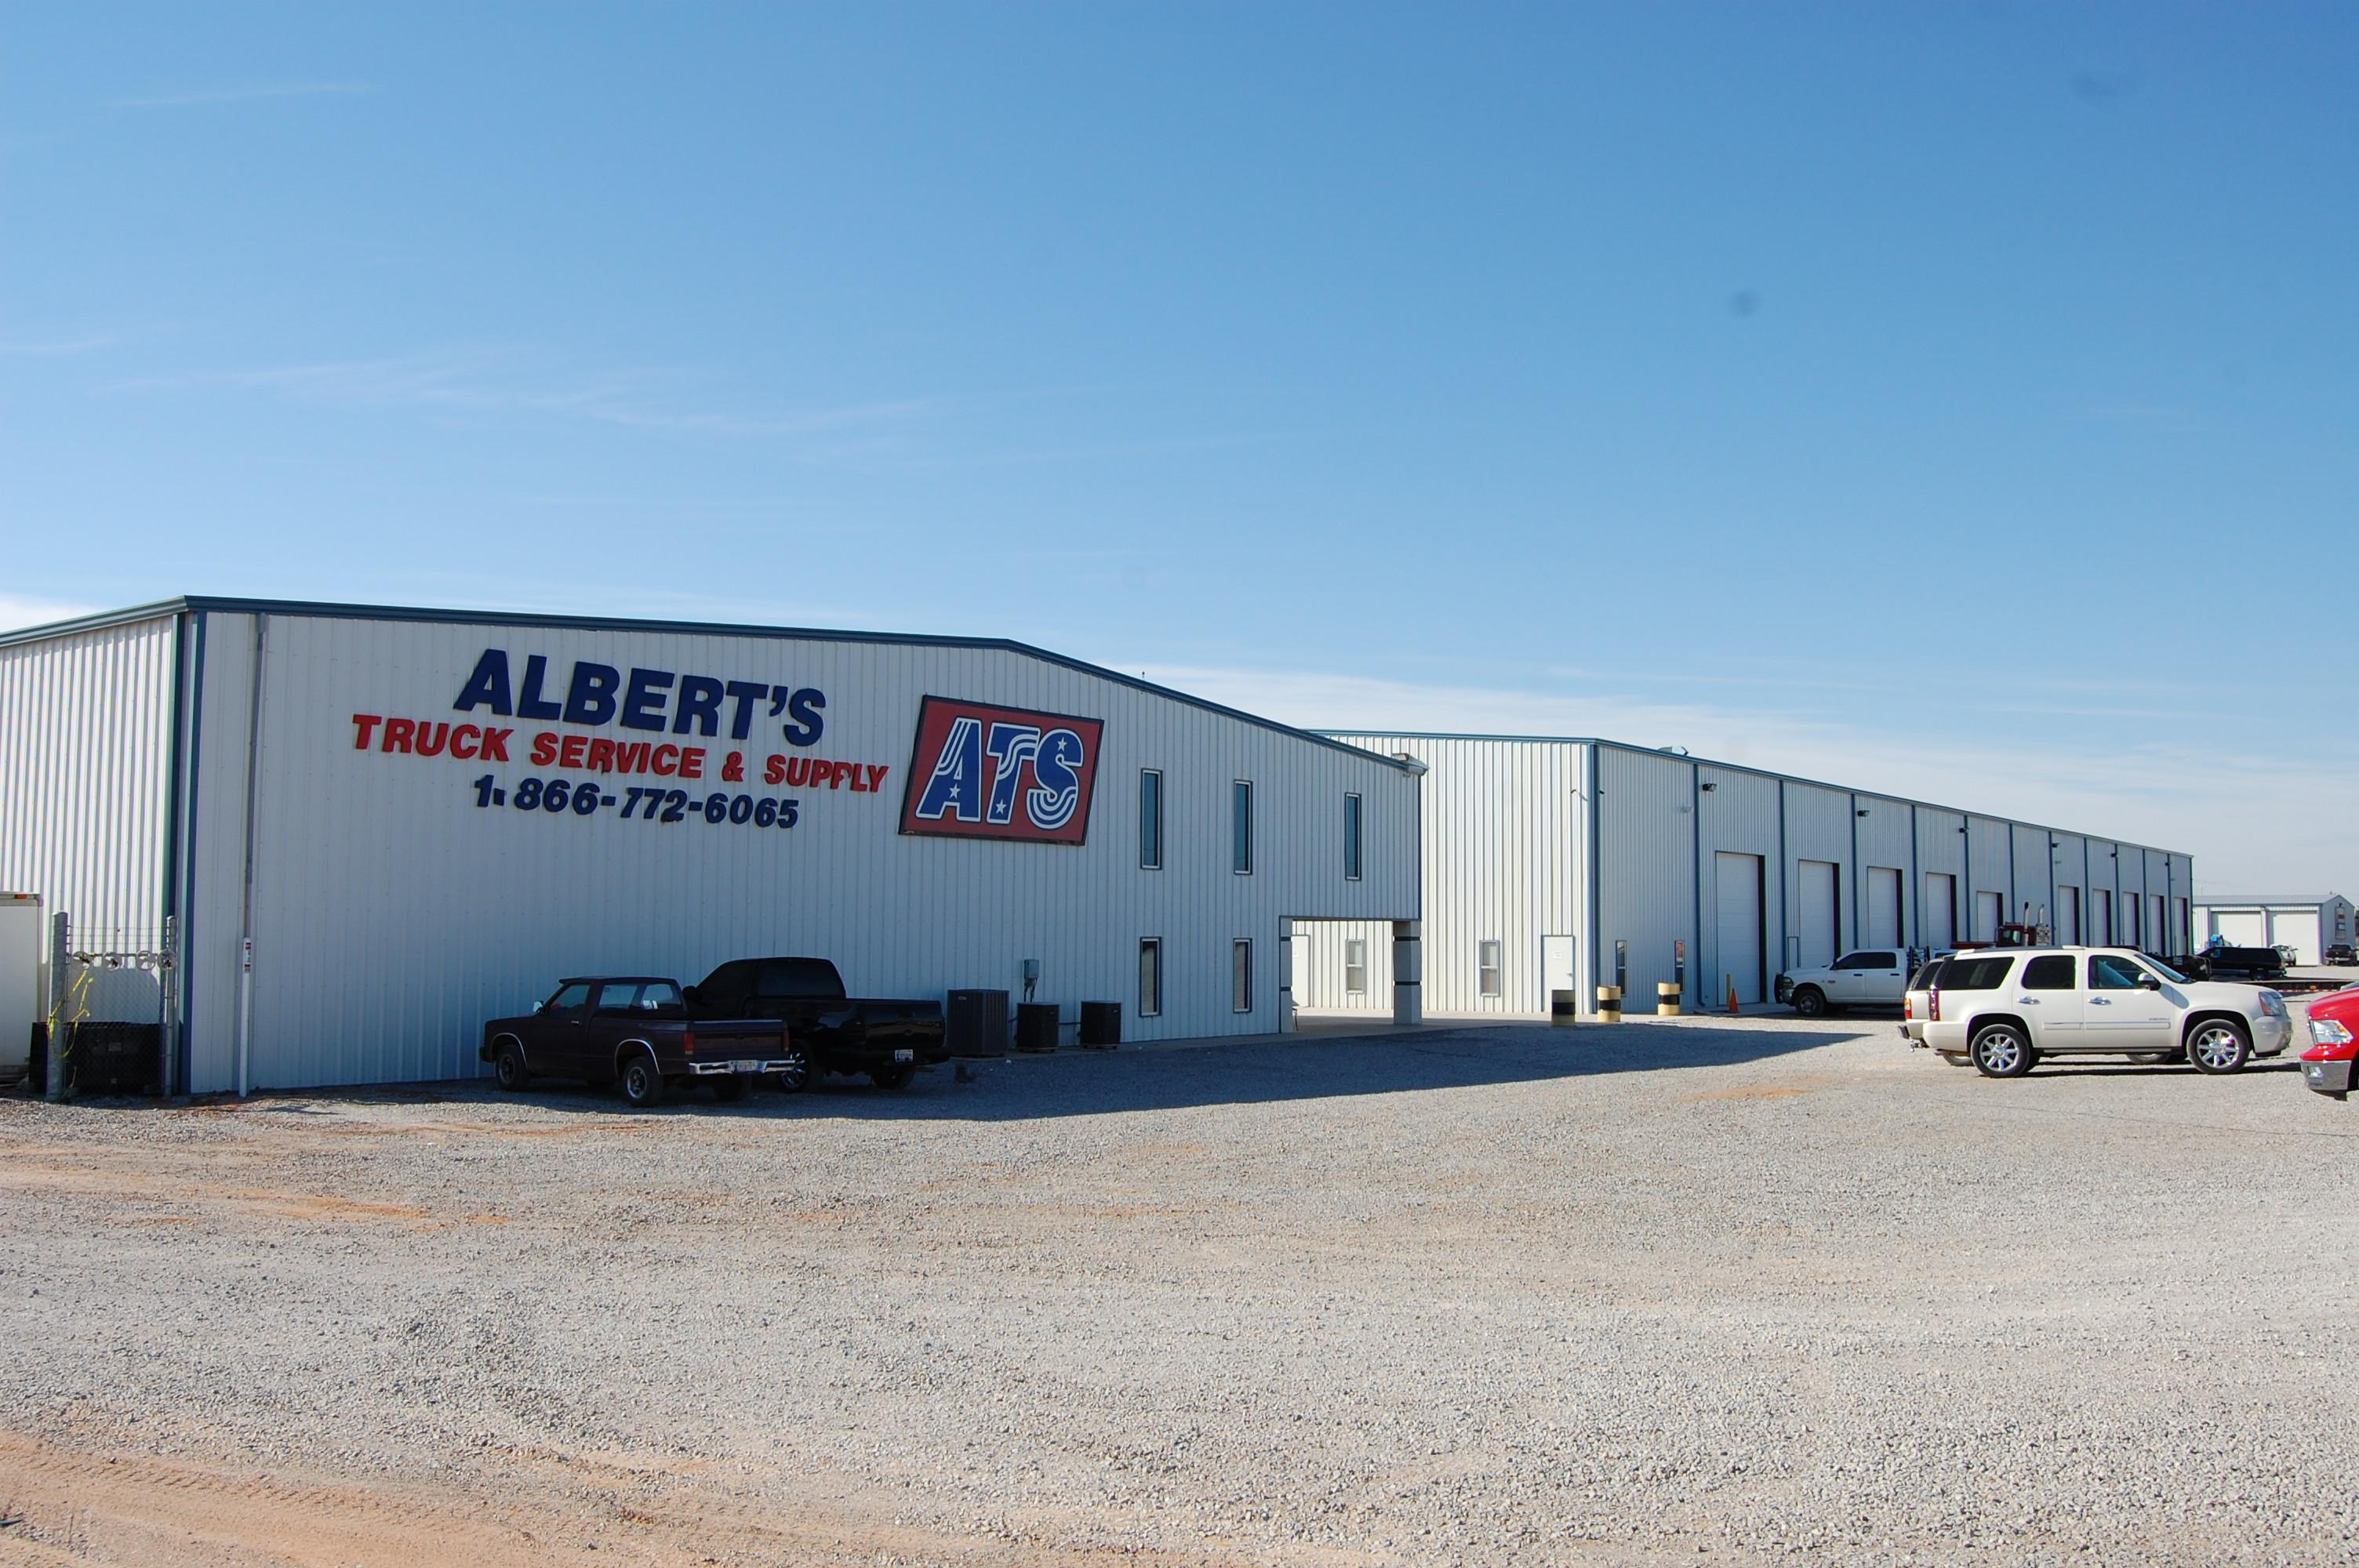 Weatherford (OK) United States  city pictures gallery : ATS Albert's Truck Service in Weatherford, OK 580 772 6065